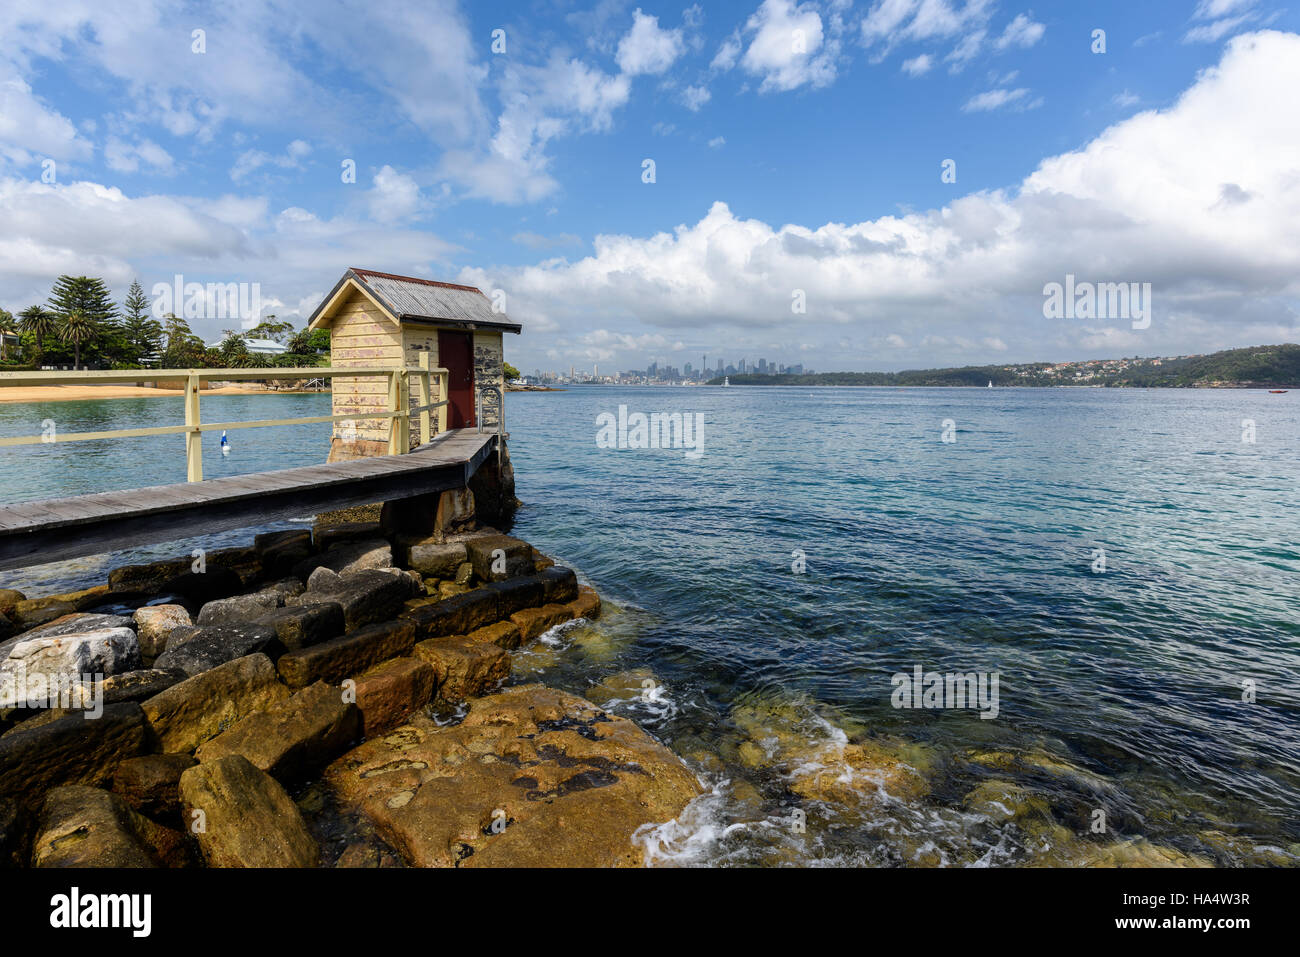 View across Sydney harbor from Watsons Bay towards the city - Stock Image